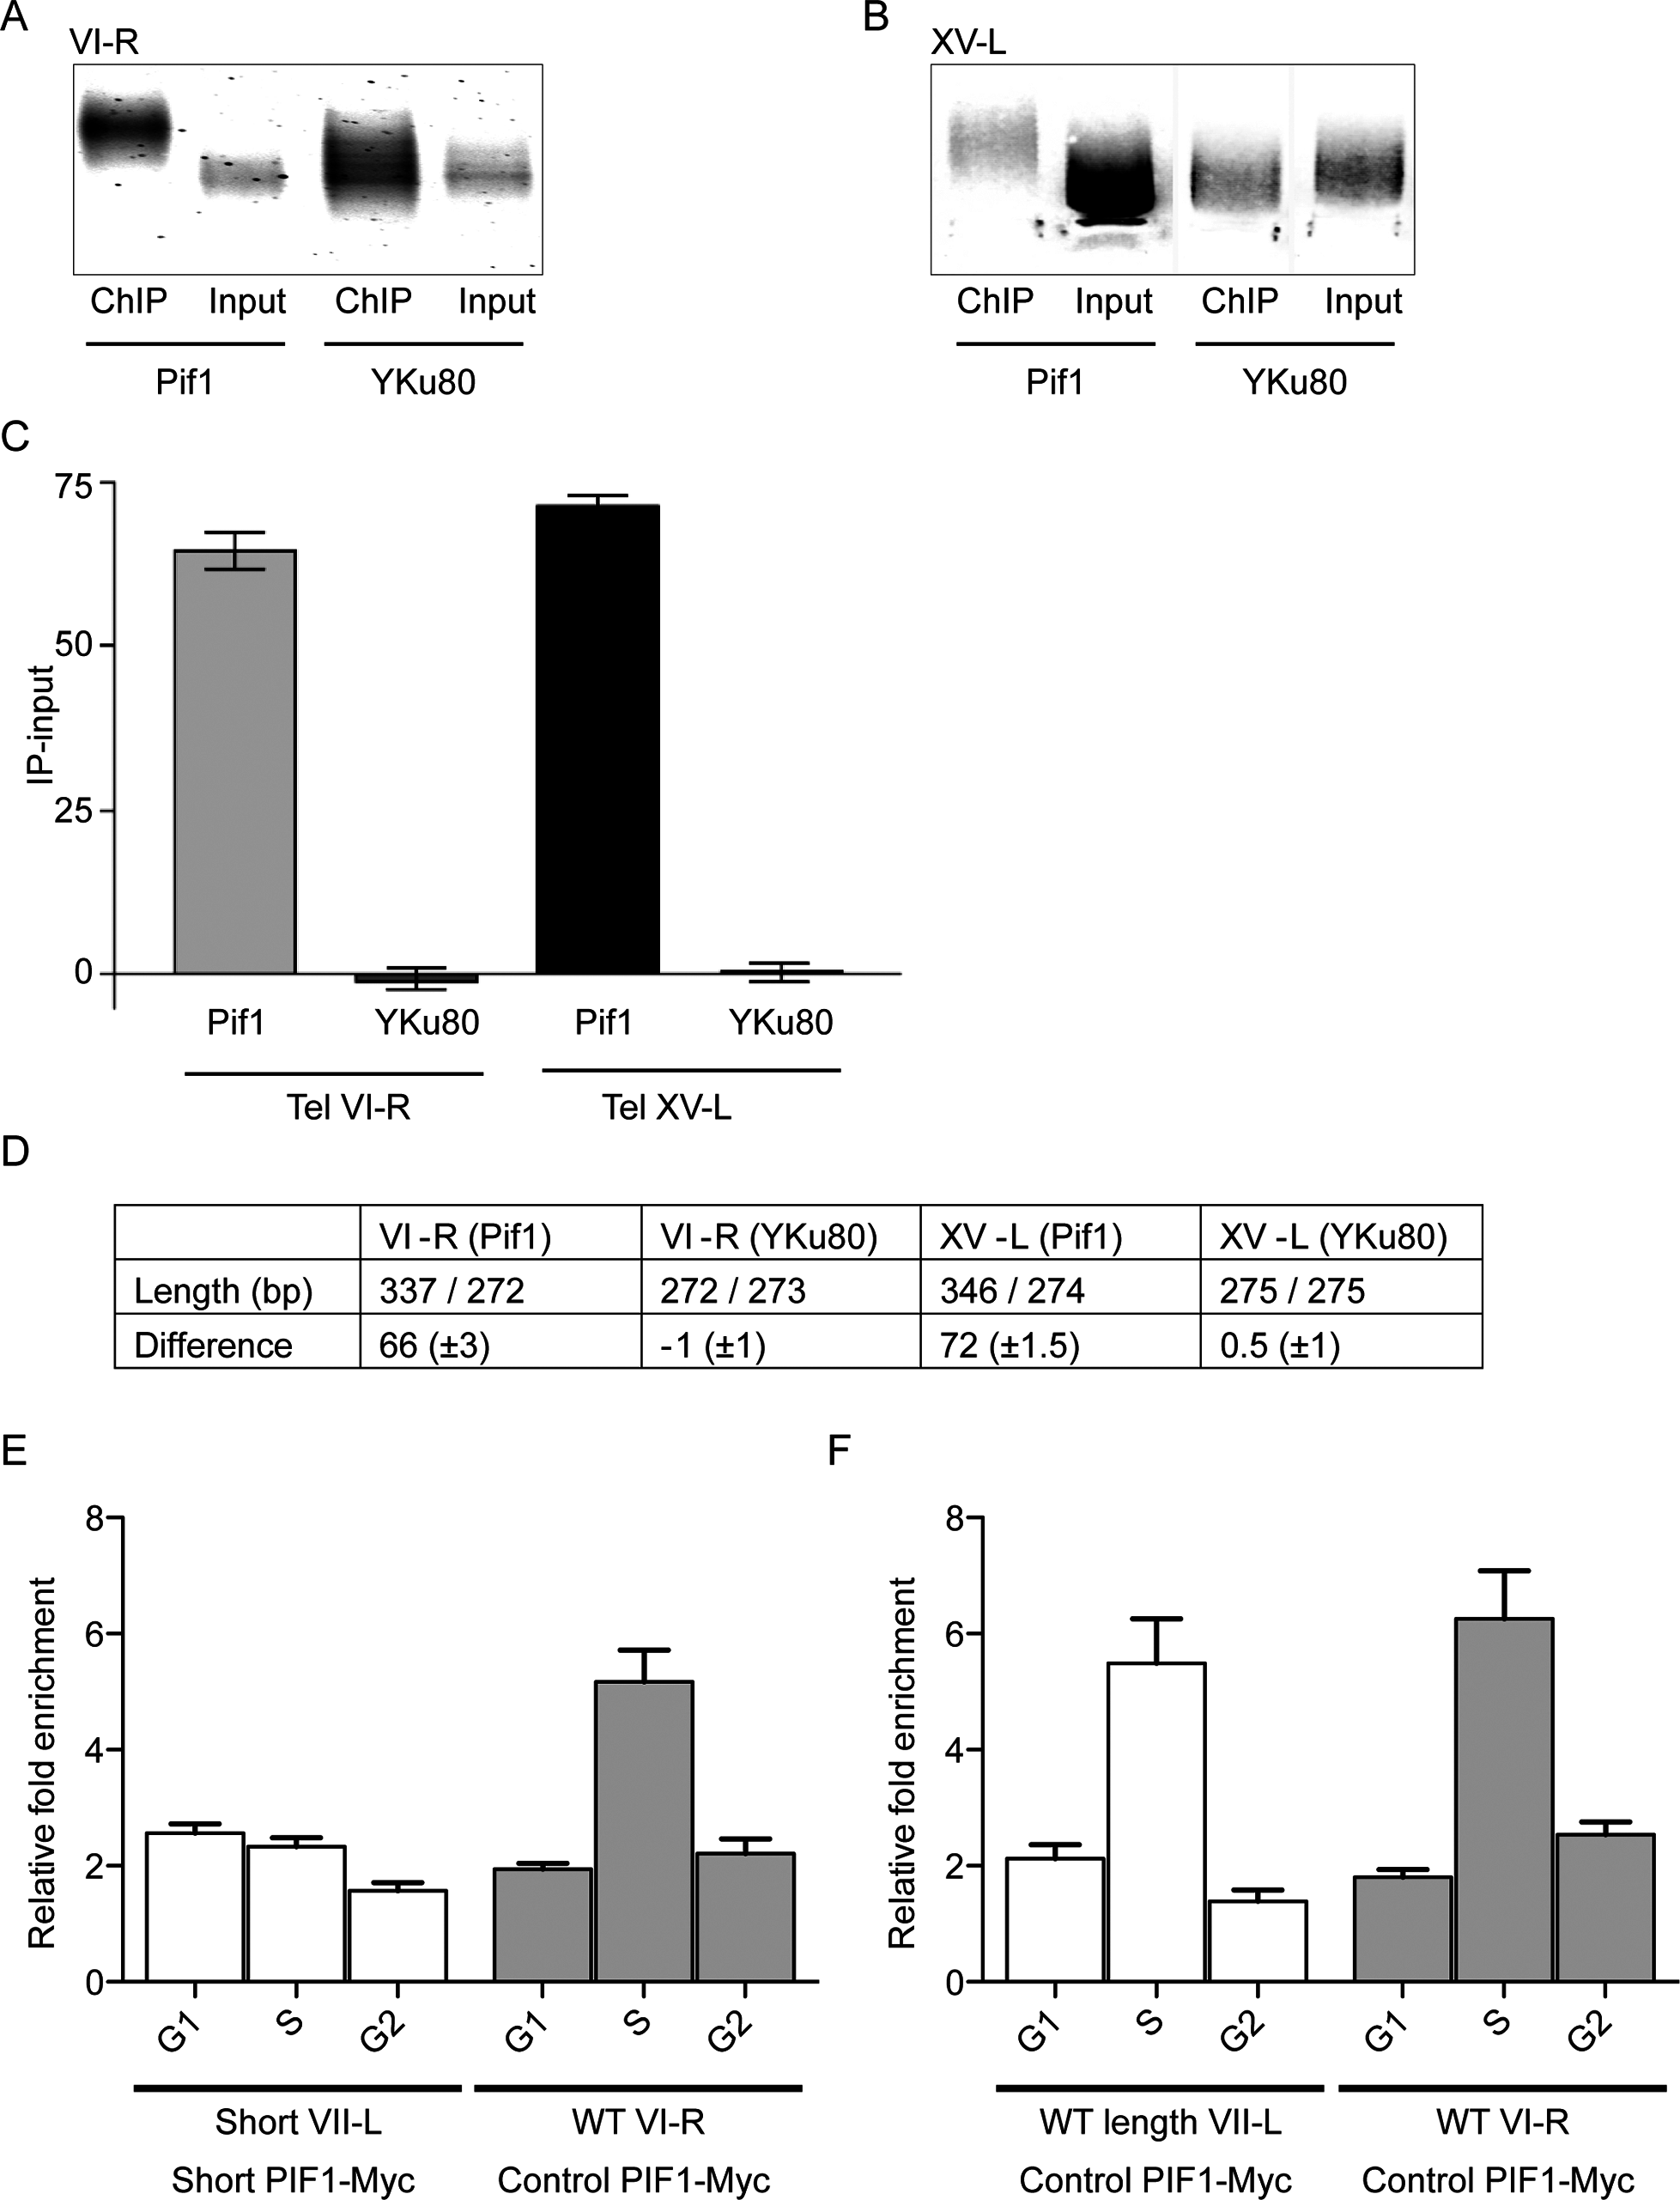 Pif1 preferentially binds to long telomeres.